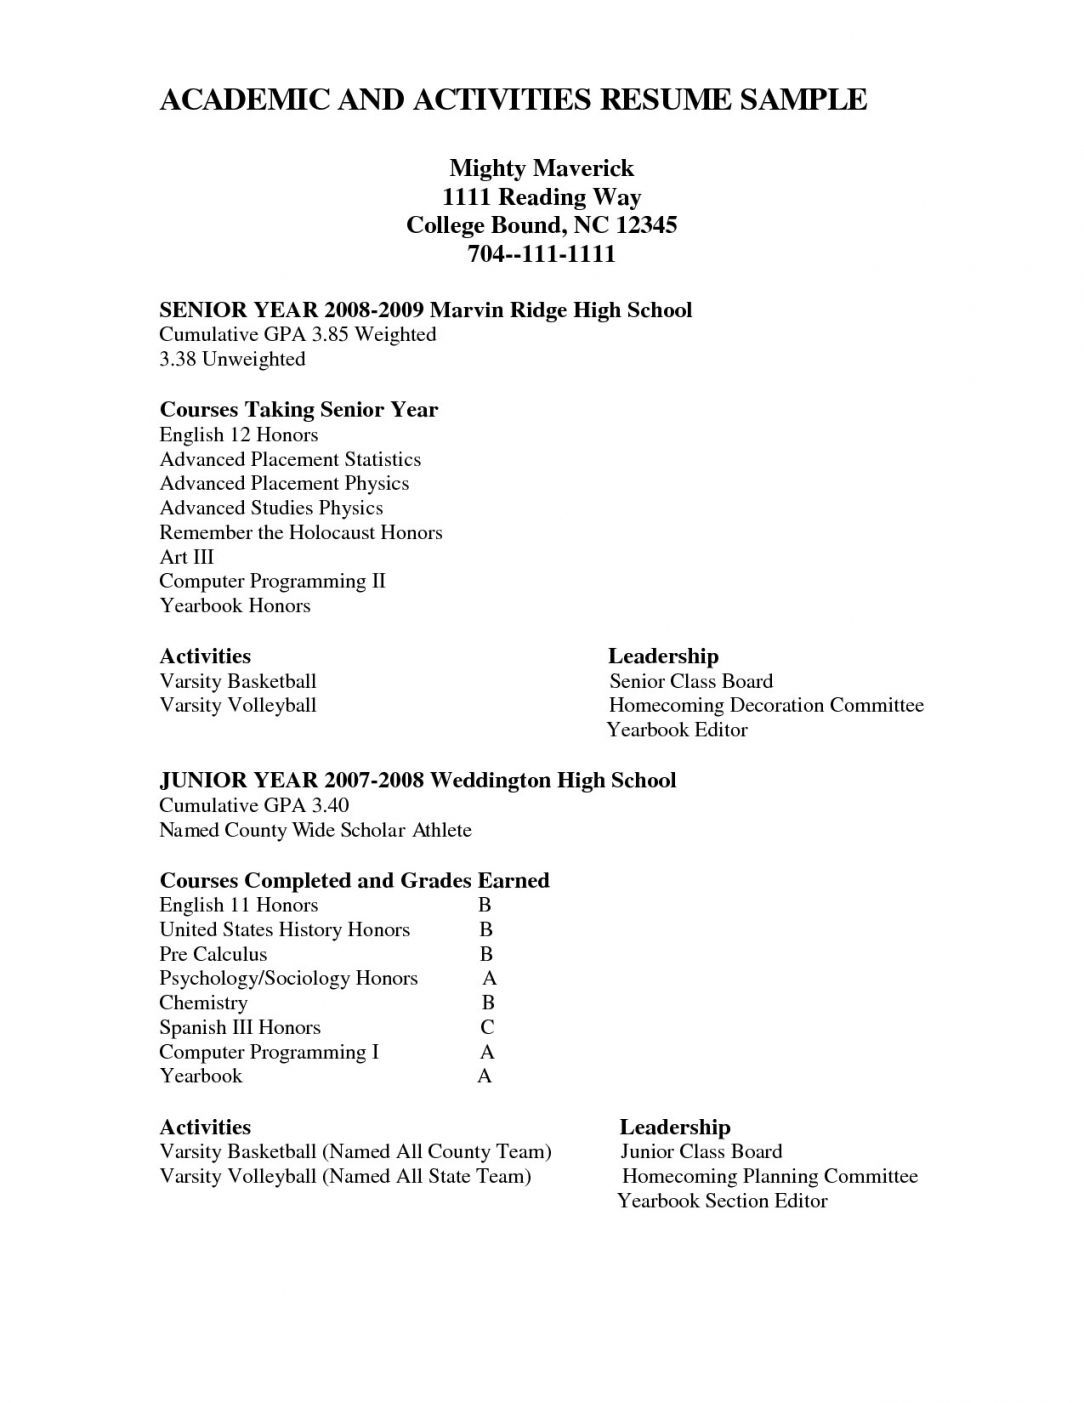 pin on high school resume template activities and honors sample best career objectives Resume Activities And Honors Resume Sample